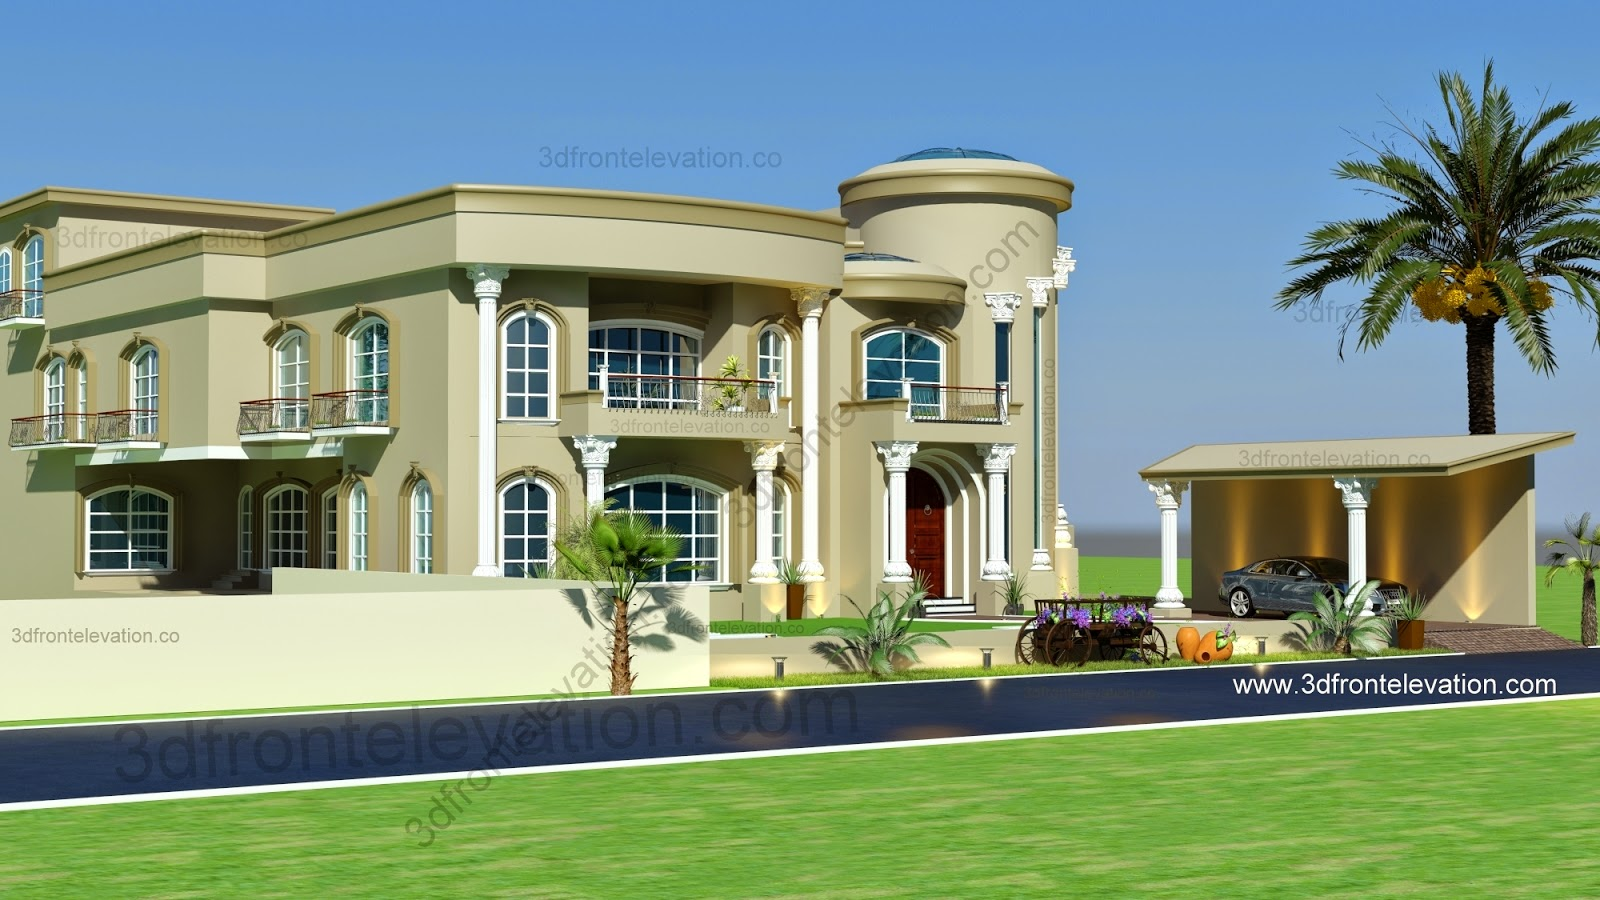 2 Story Home Floor Plans 3d Front Elevation Com Beautiful Modern Villa Design 2015